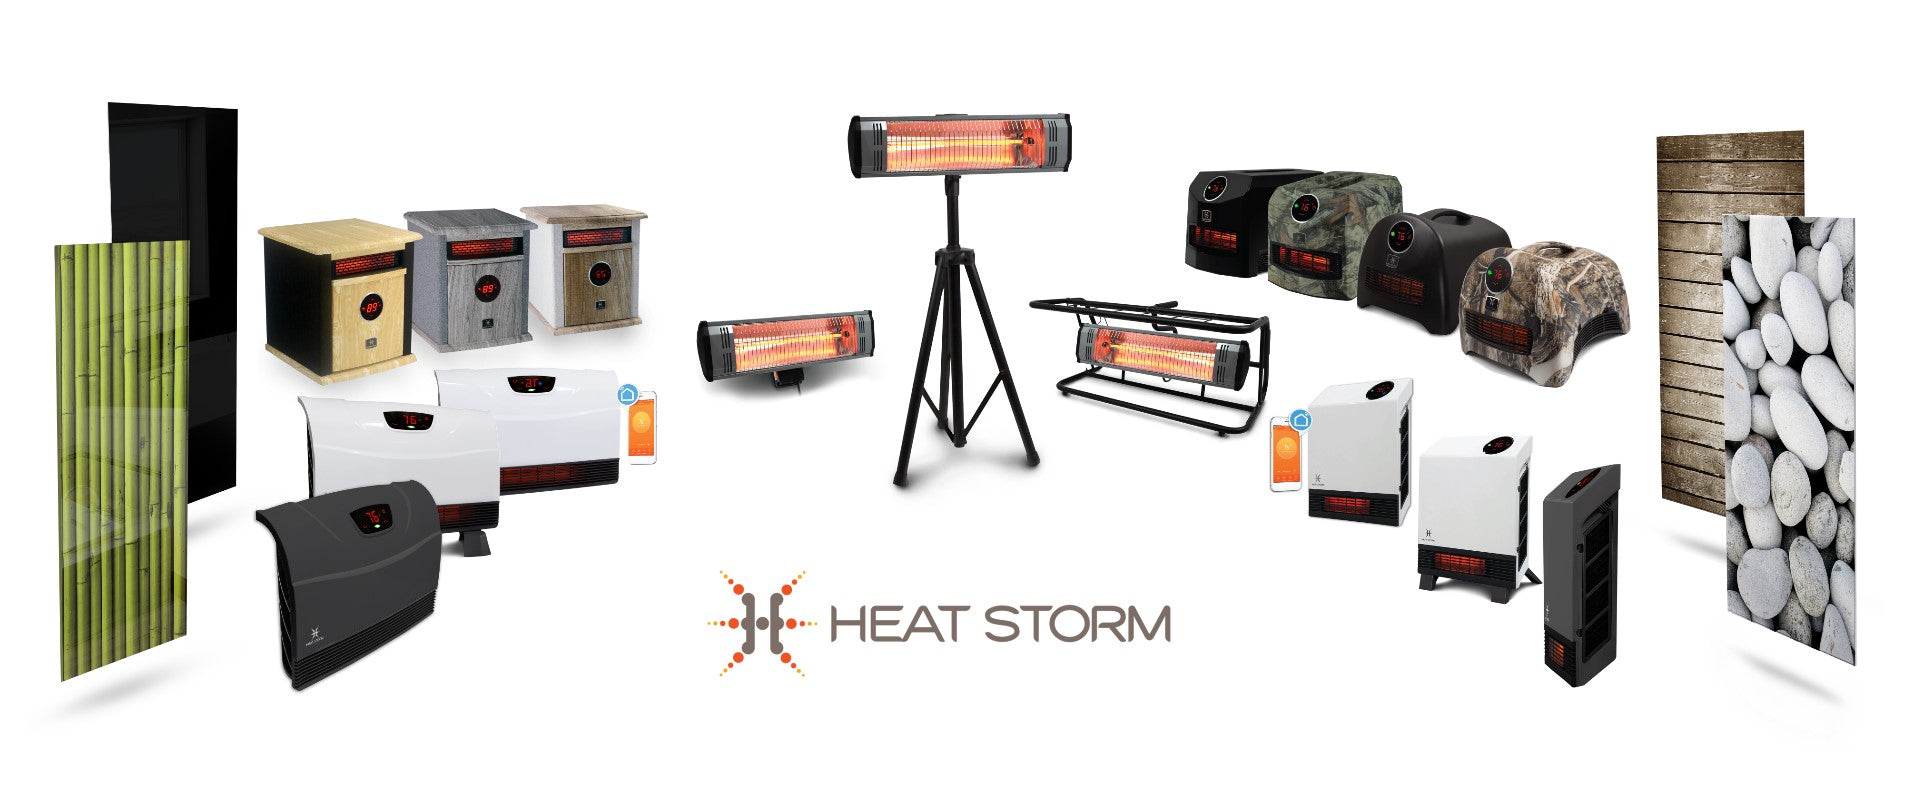 heat storm infrared space heaters